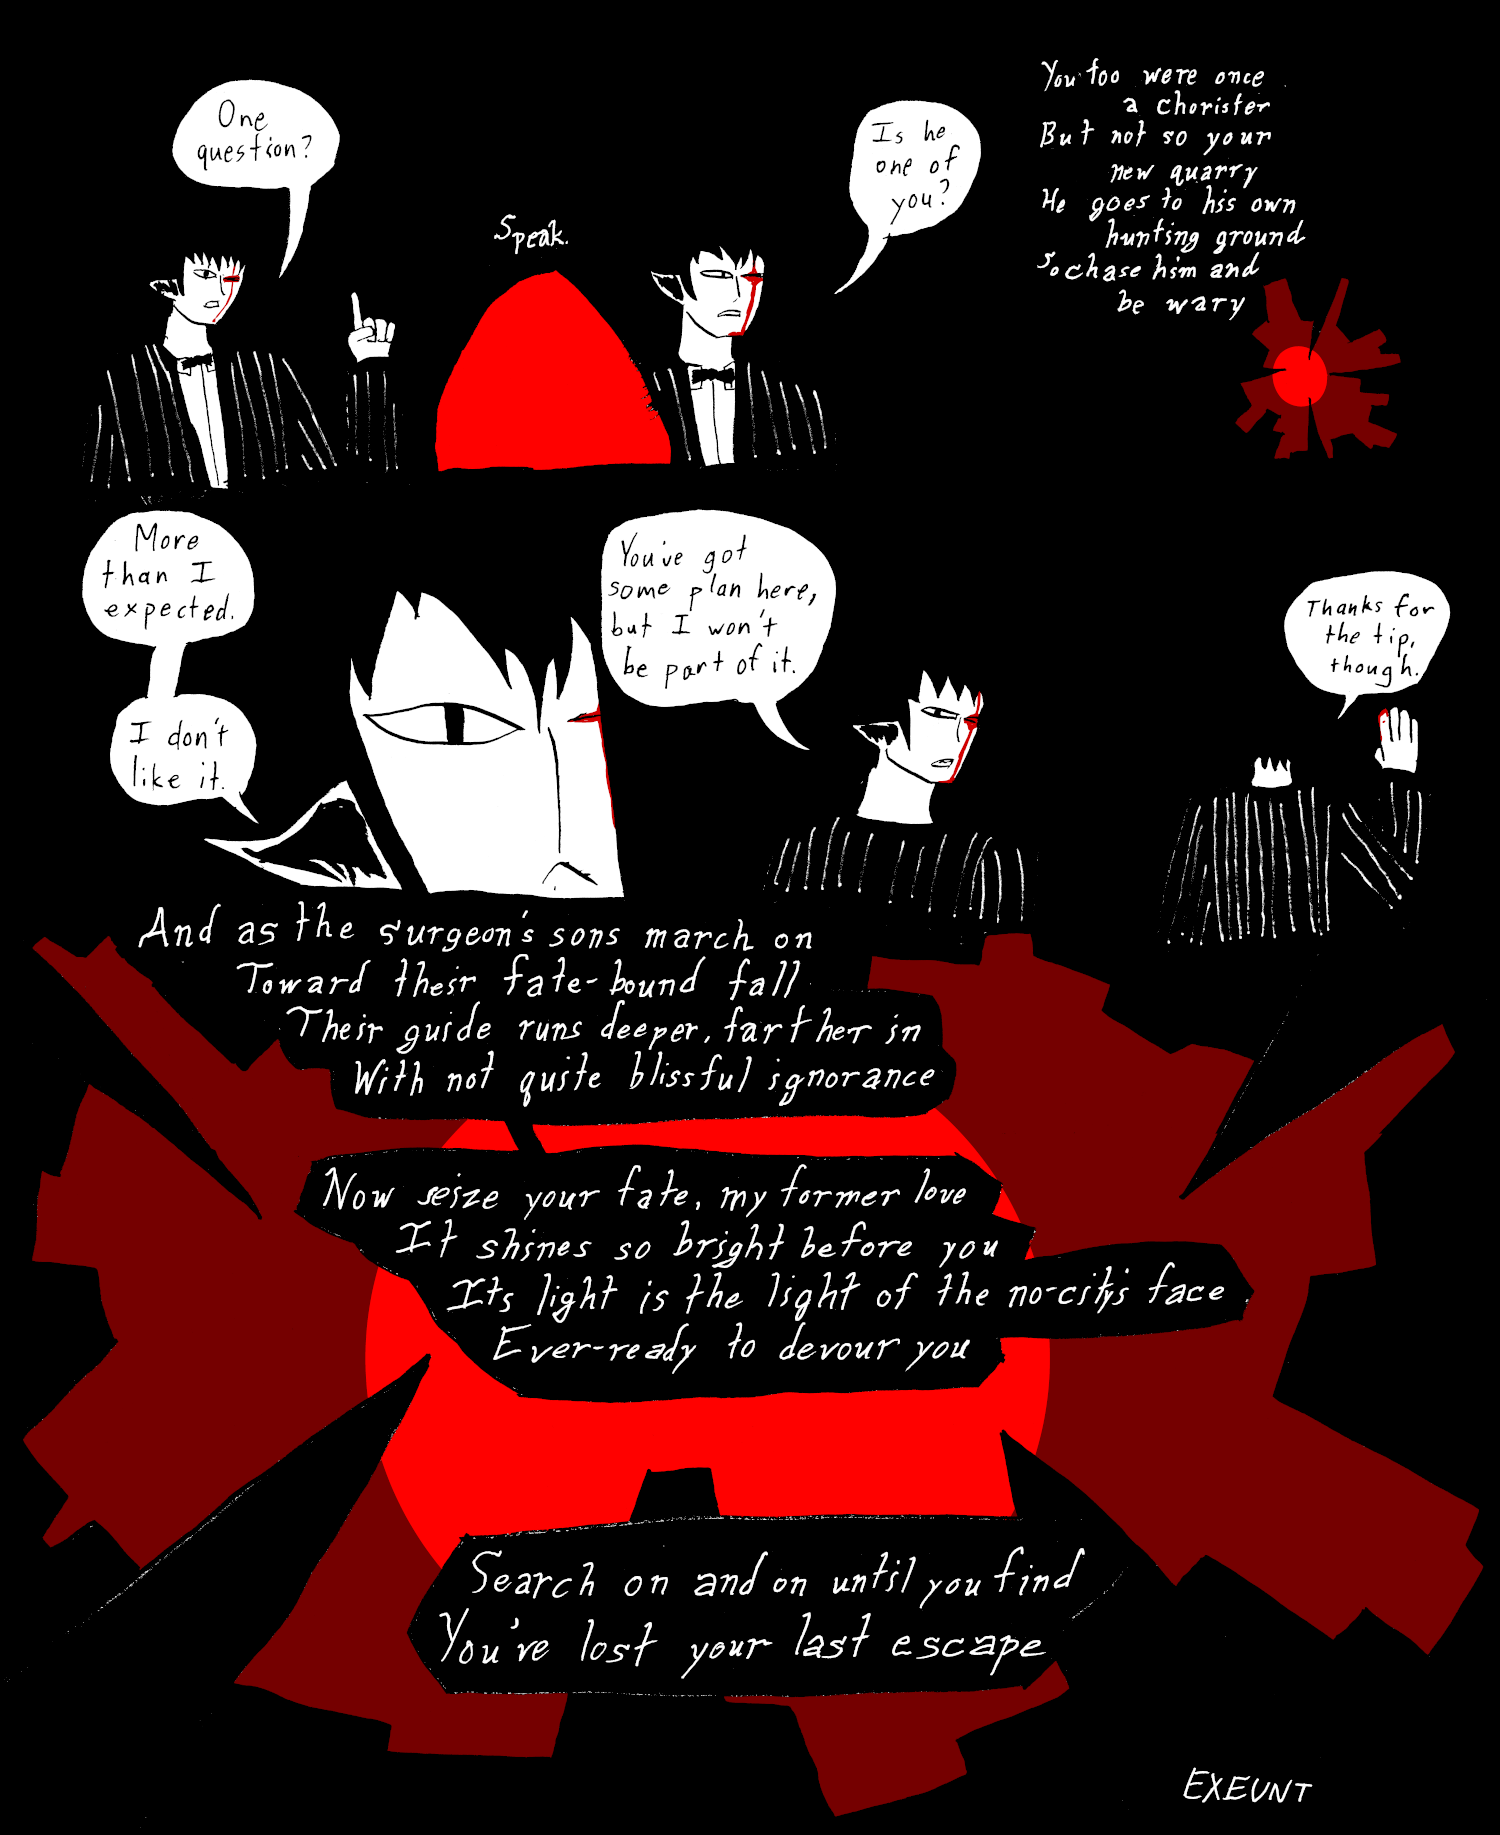 Chapter 4: Page 15